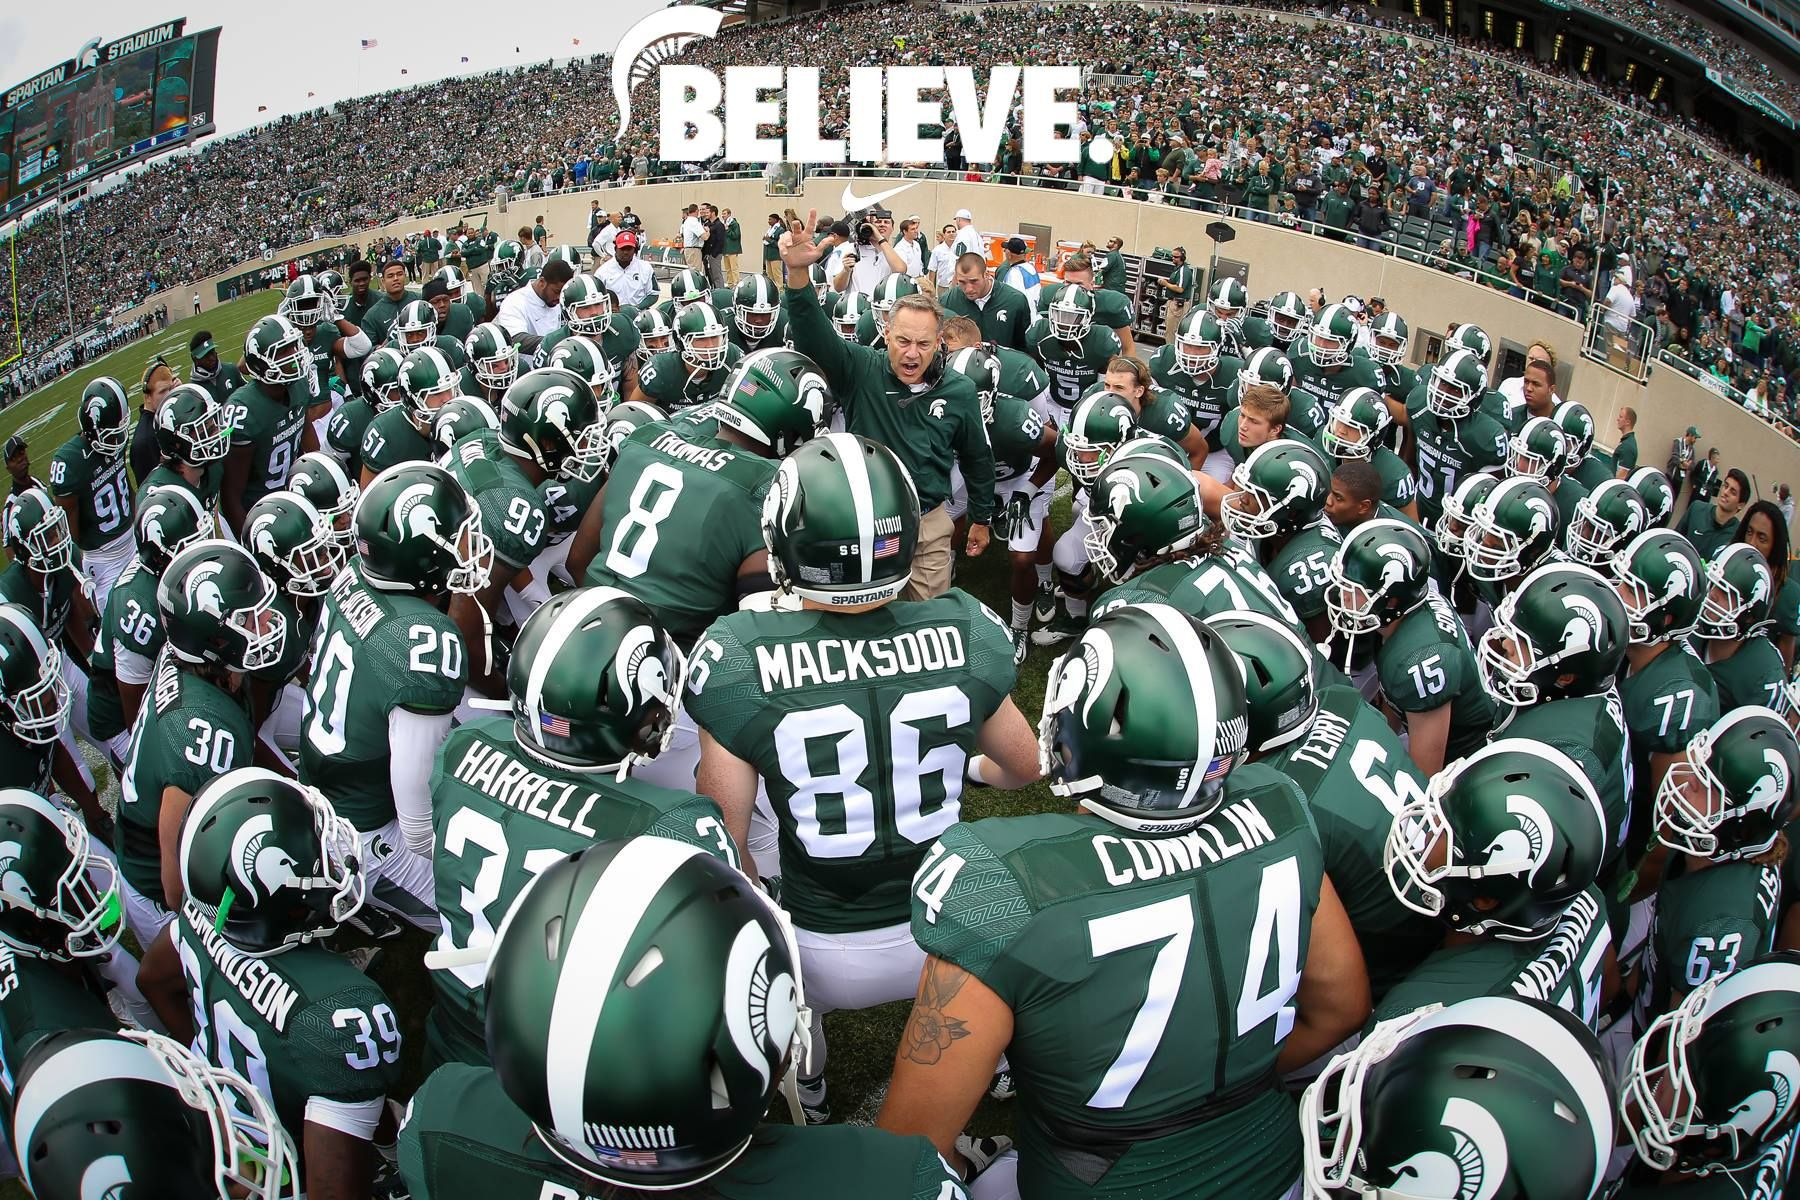 Pin By Robyn Aitken On State Go Green Best College Football Team Ever Etc Michigan State Football Michigan State University Michigan State